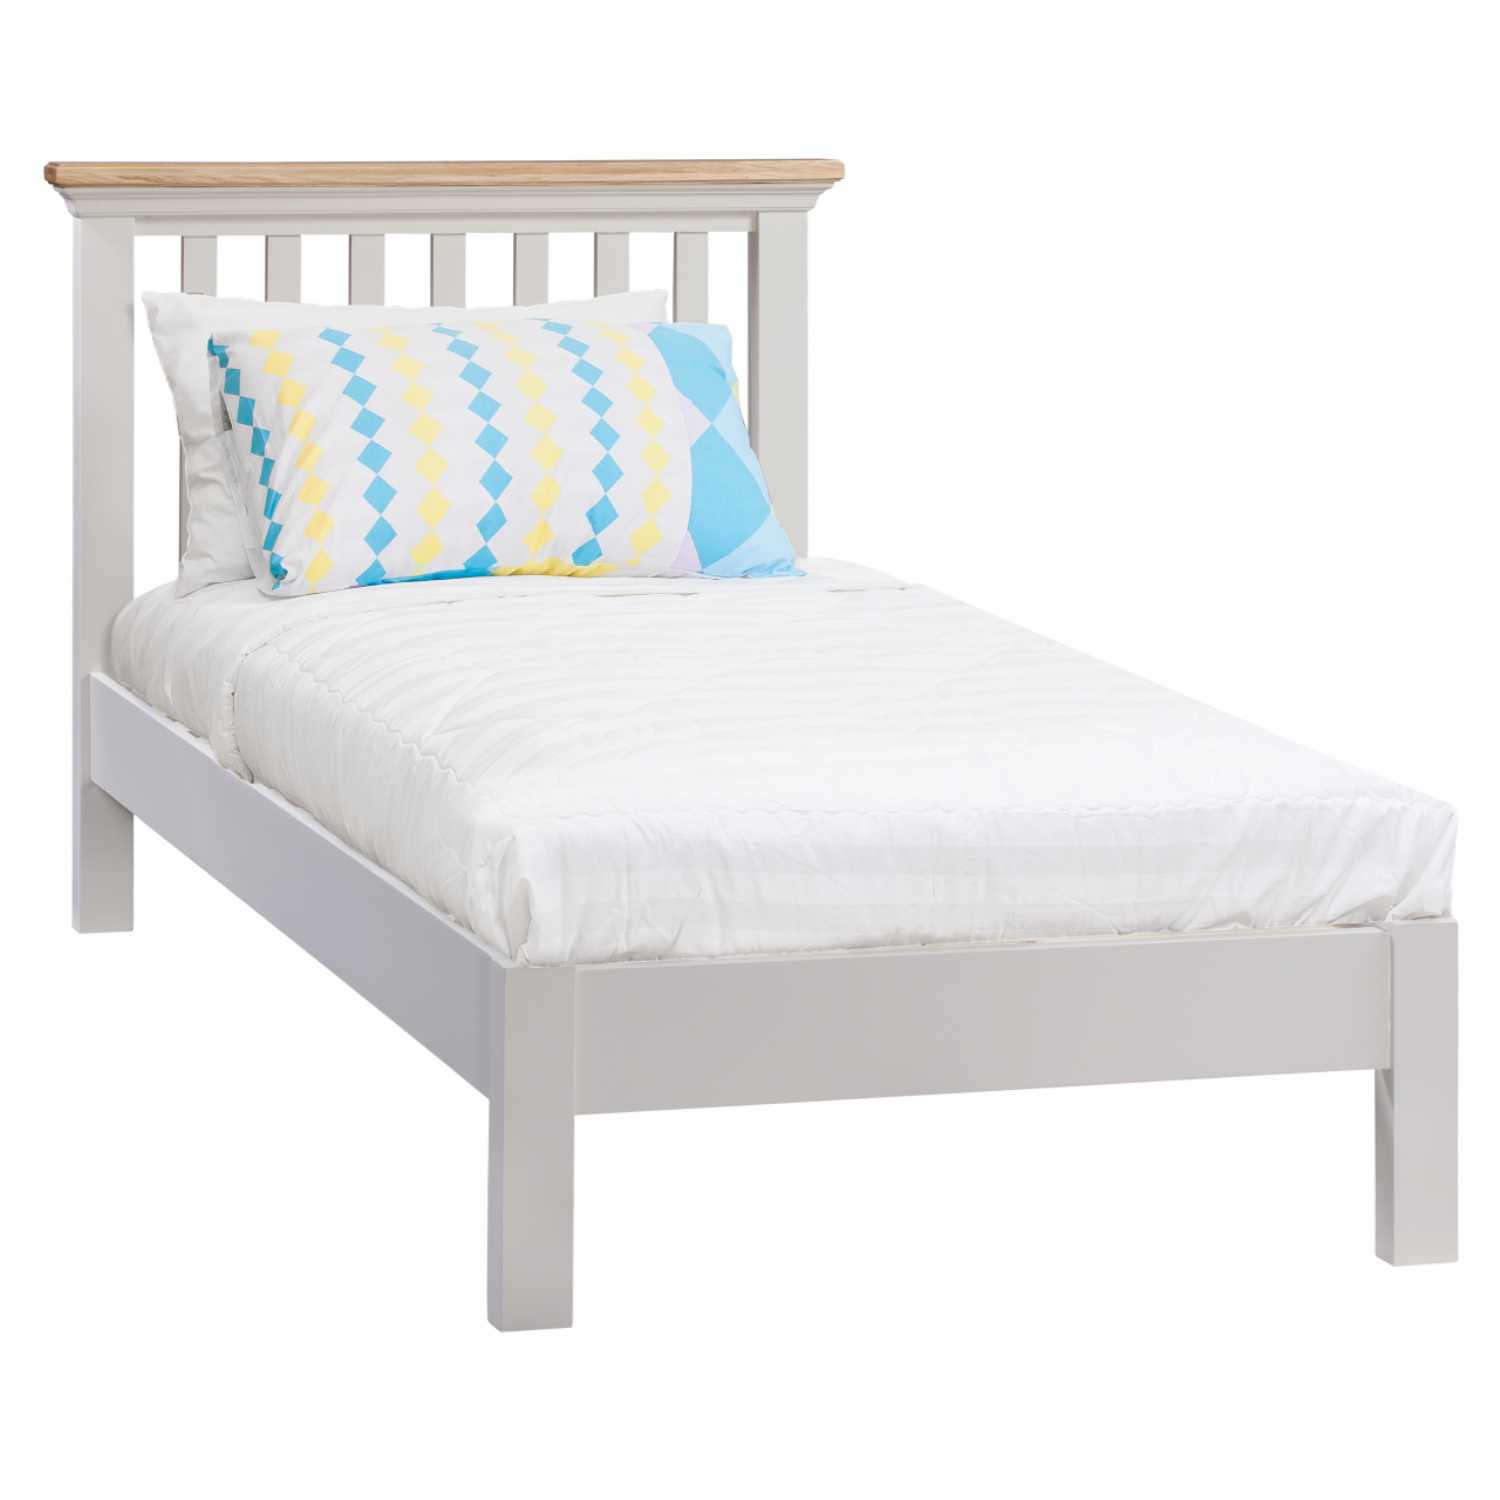 Cotswold Single Bed